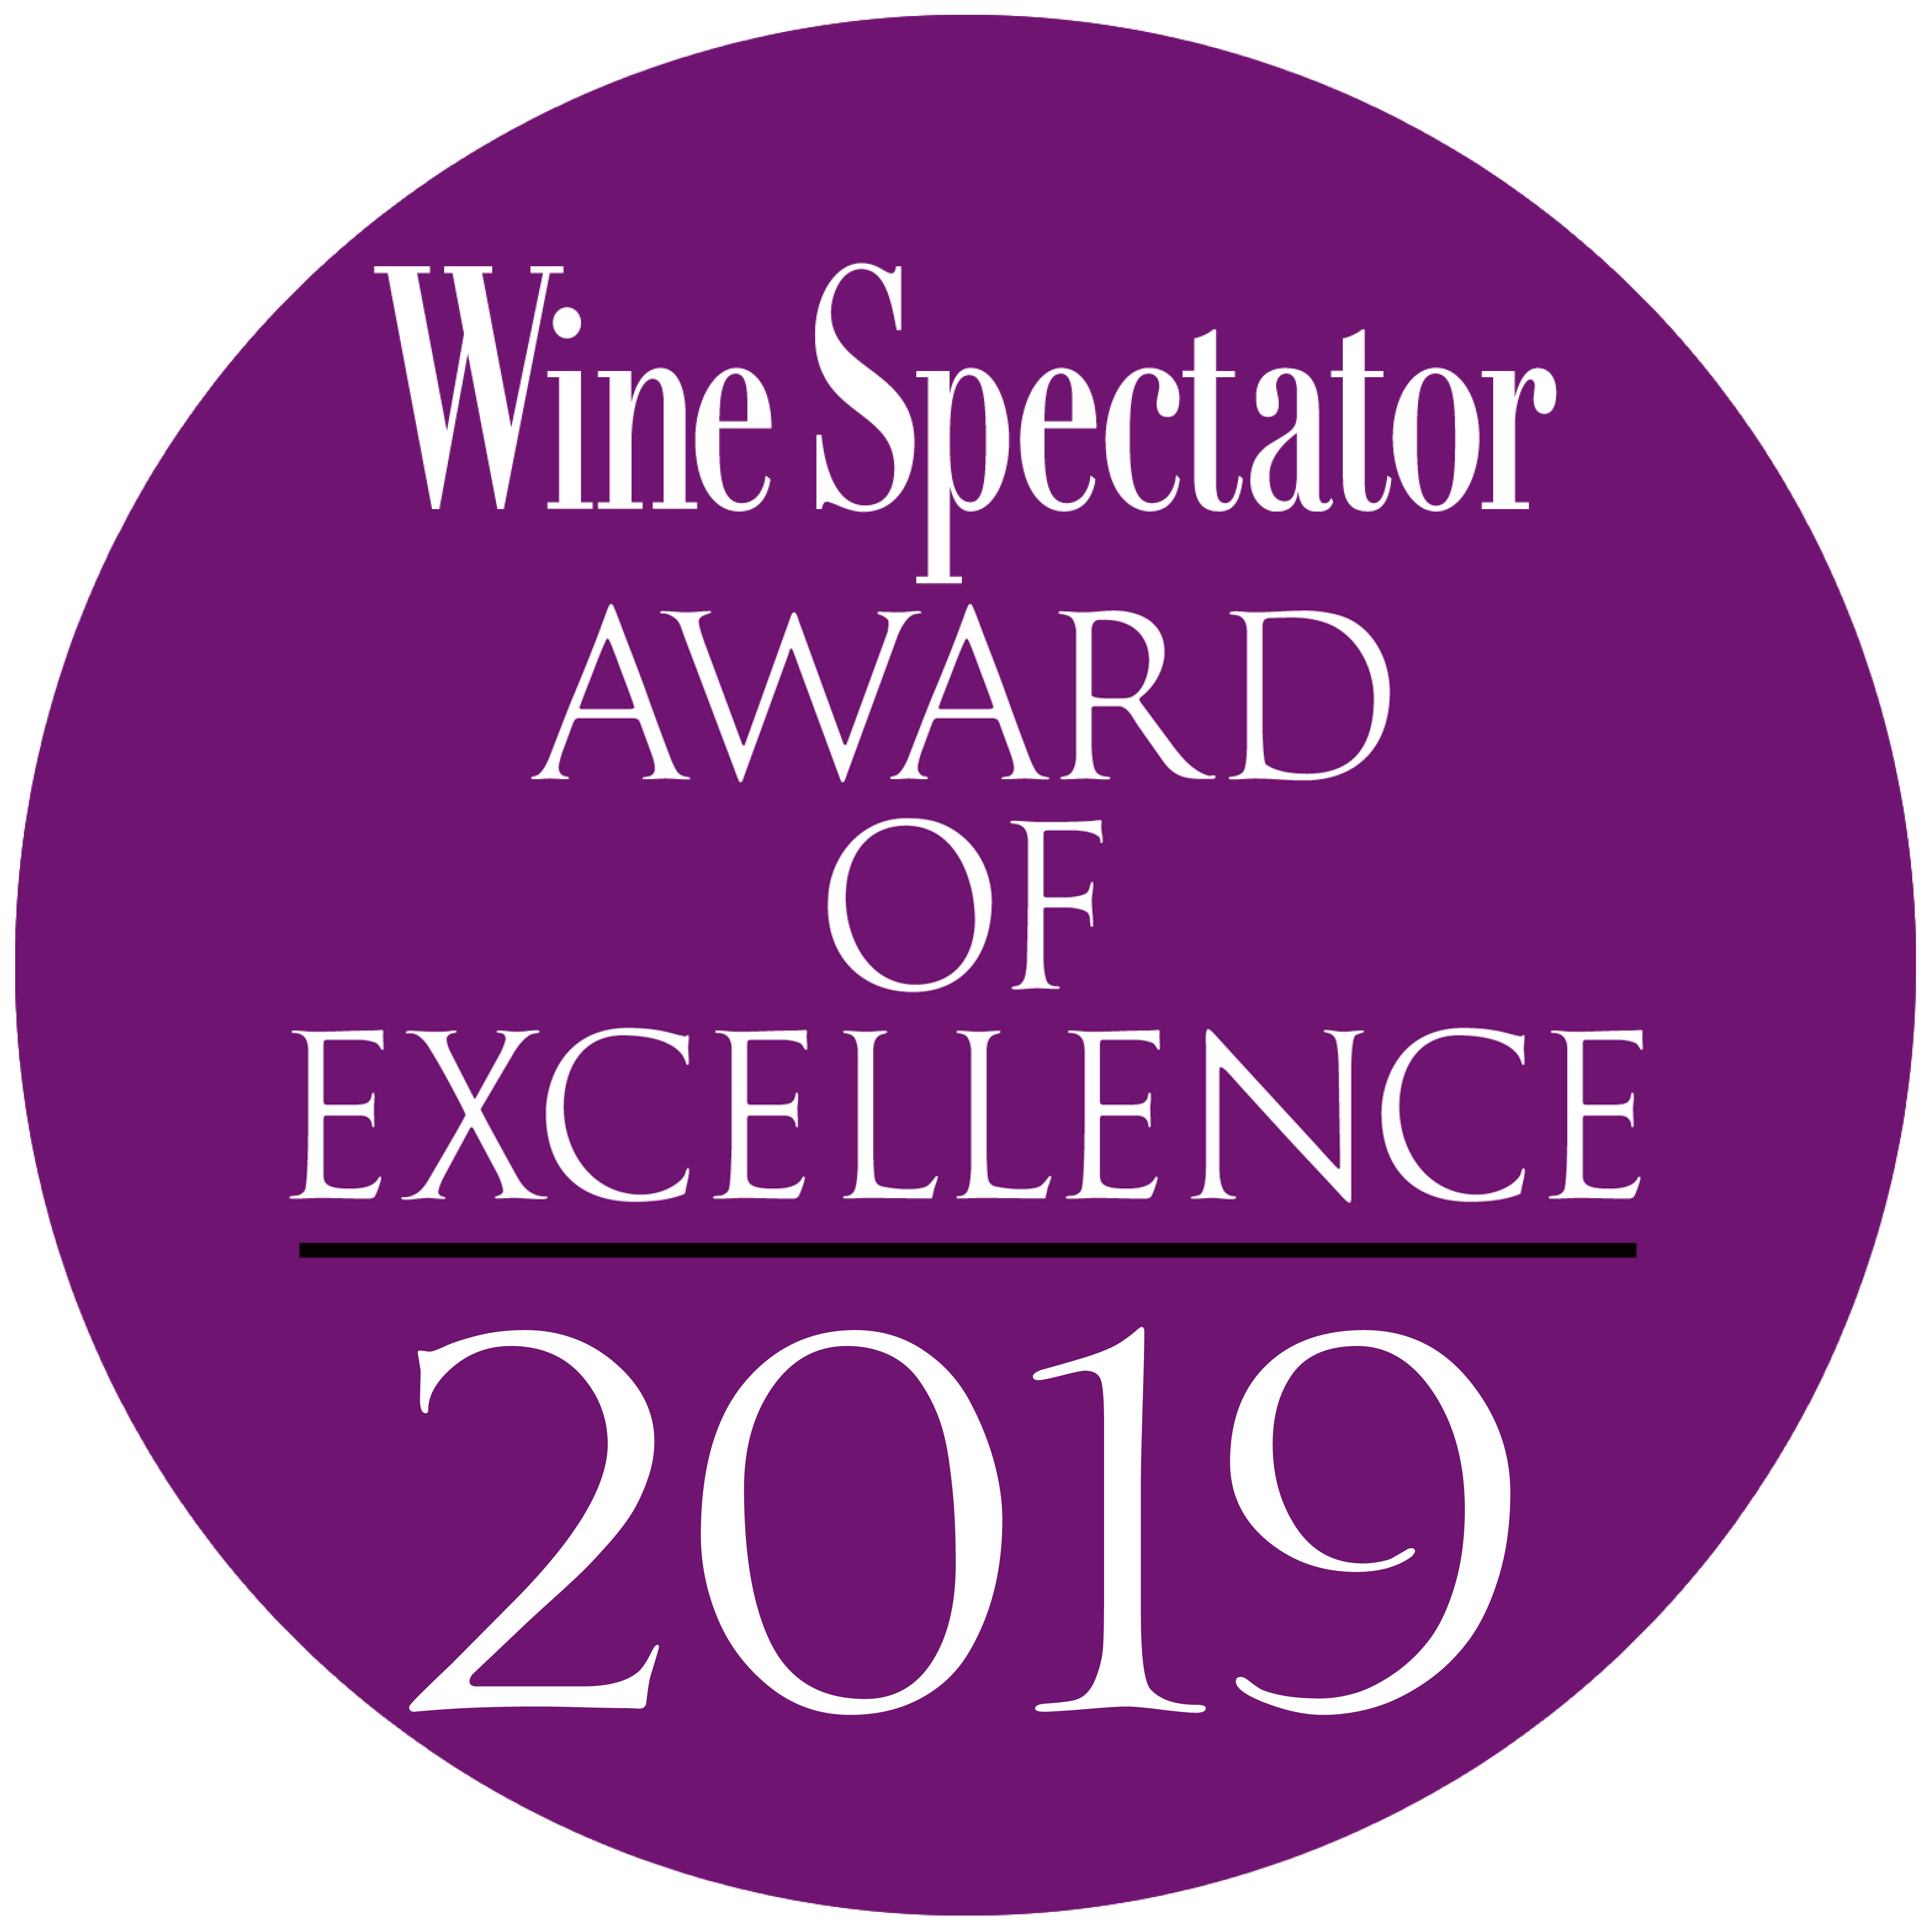 award of excellence 2019